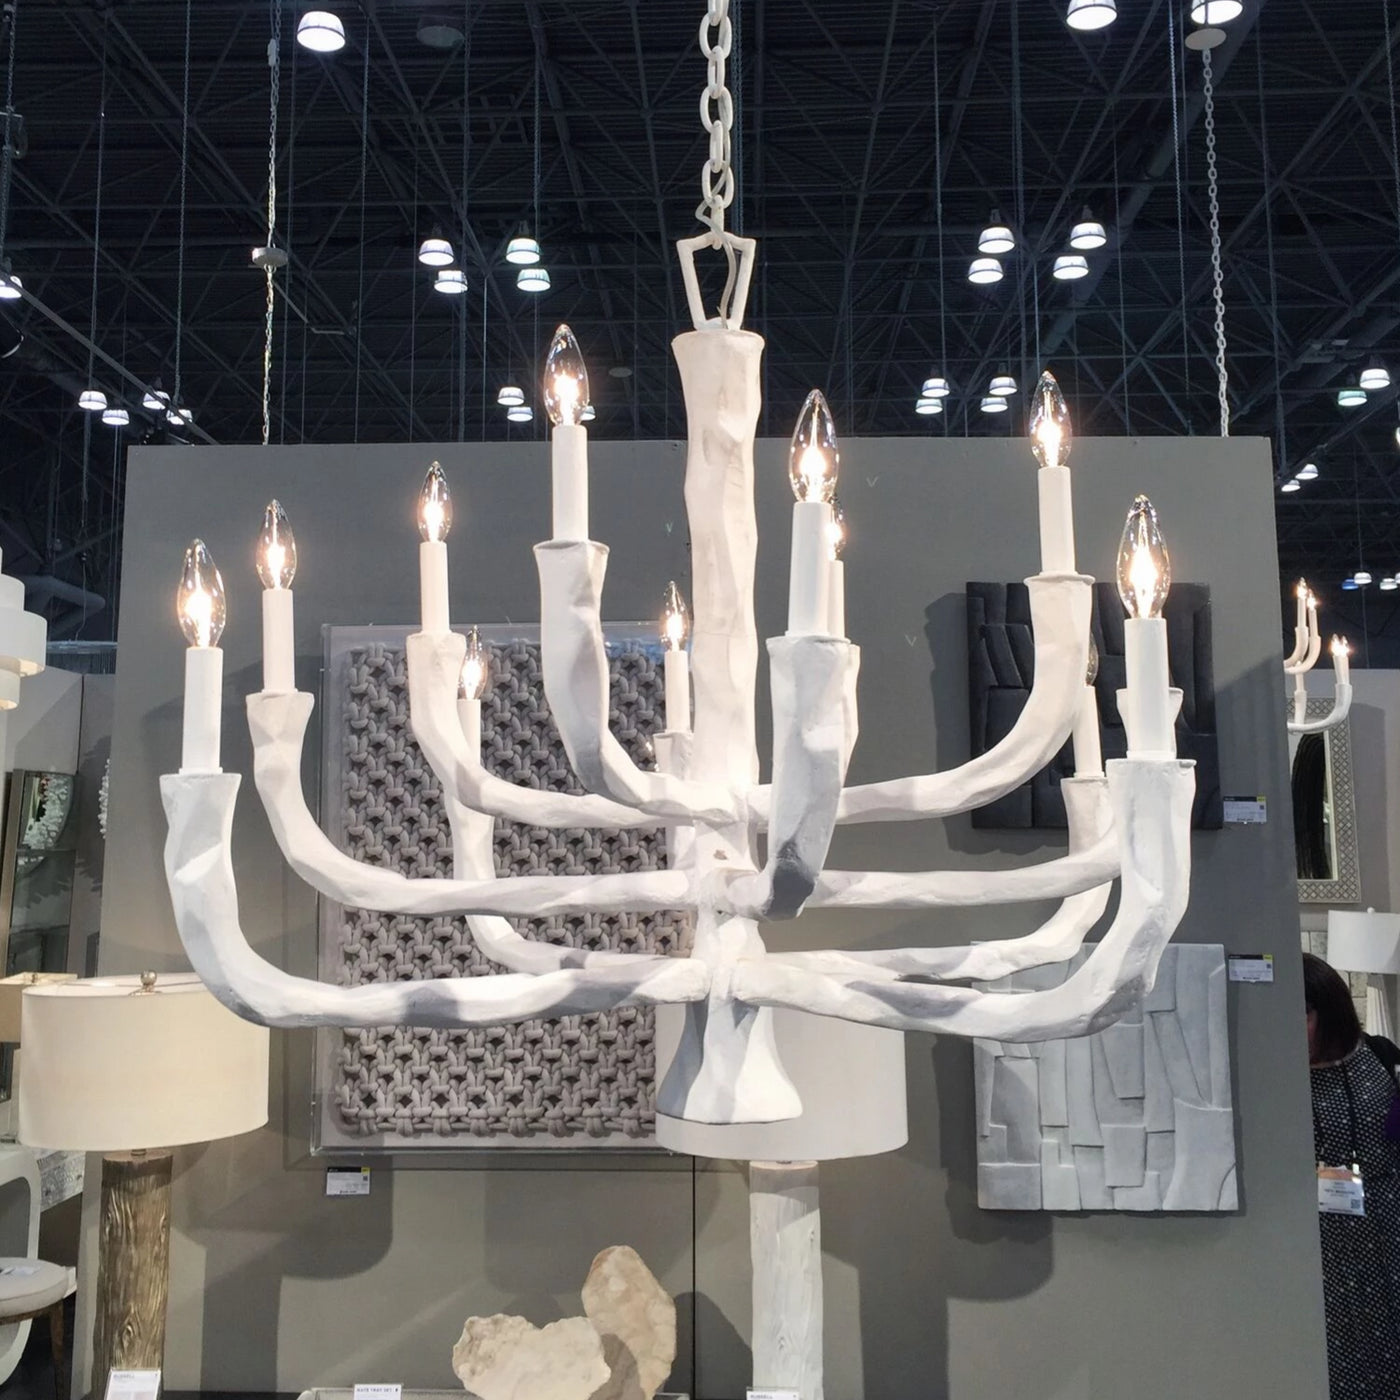 Fawn Chandelier White Concrete hanging gesso organic lighting